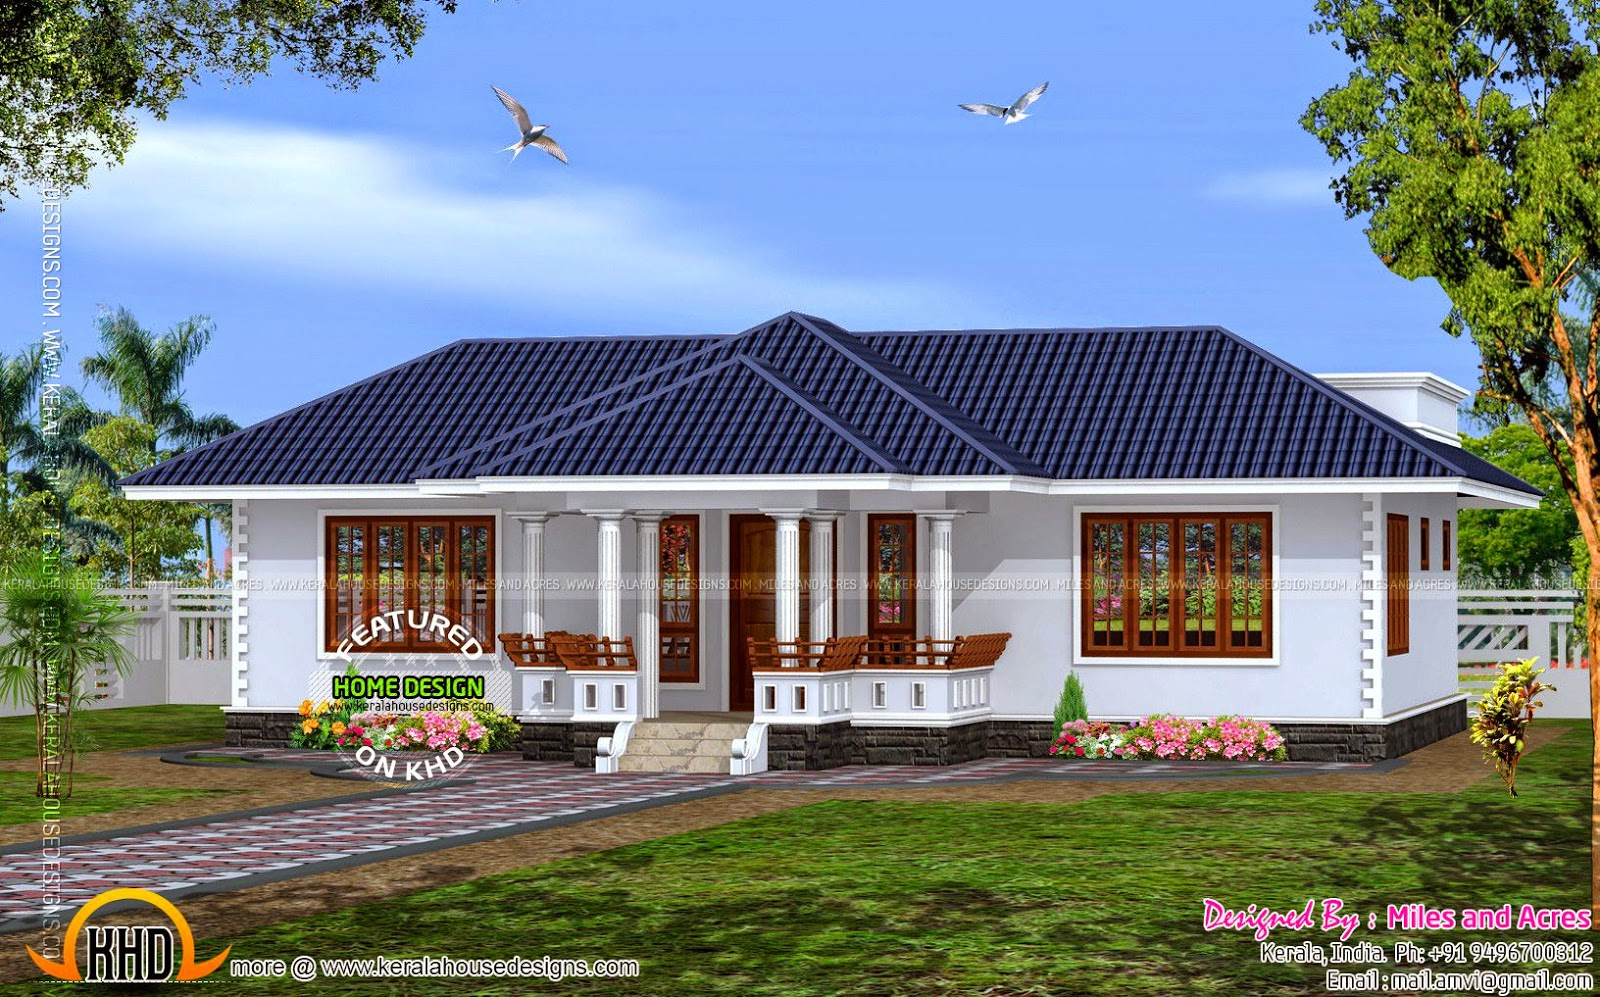 Ghanian House Plans in addition House Plans For Sale In Accra moreover 2 Bedroom Bath House For Rent Carmichael Ca together with Search r Textfield1 Houses Category Houses 20for 20sale additionally Nice Town Houses For Rent. on estates in accra ghana houses for sale